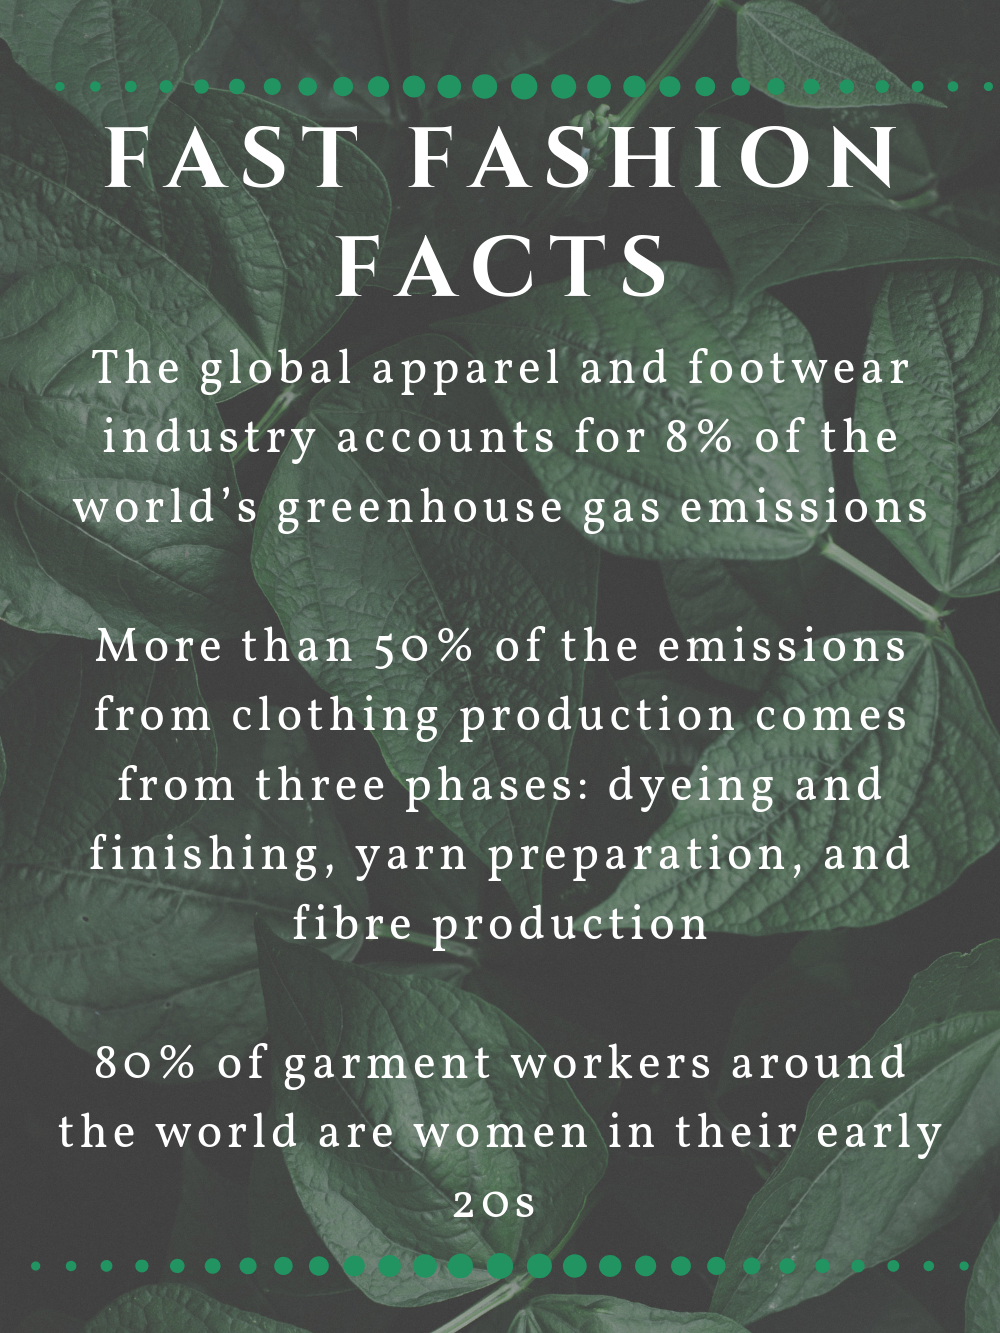 Fast Fashion Facts Infographic 1